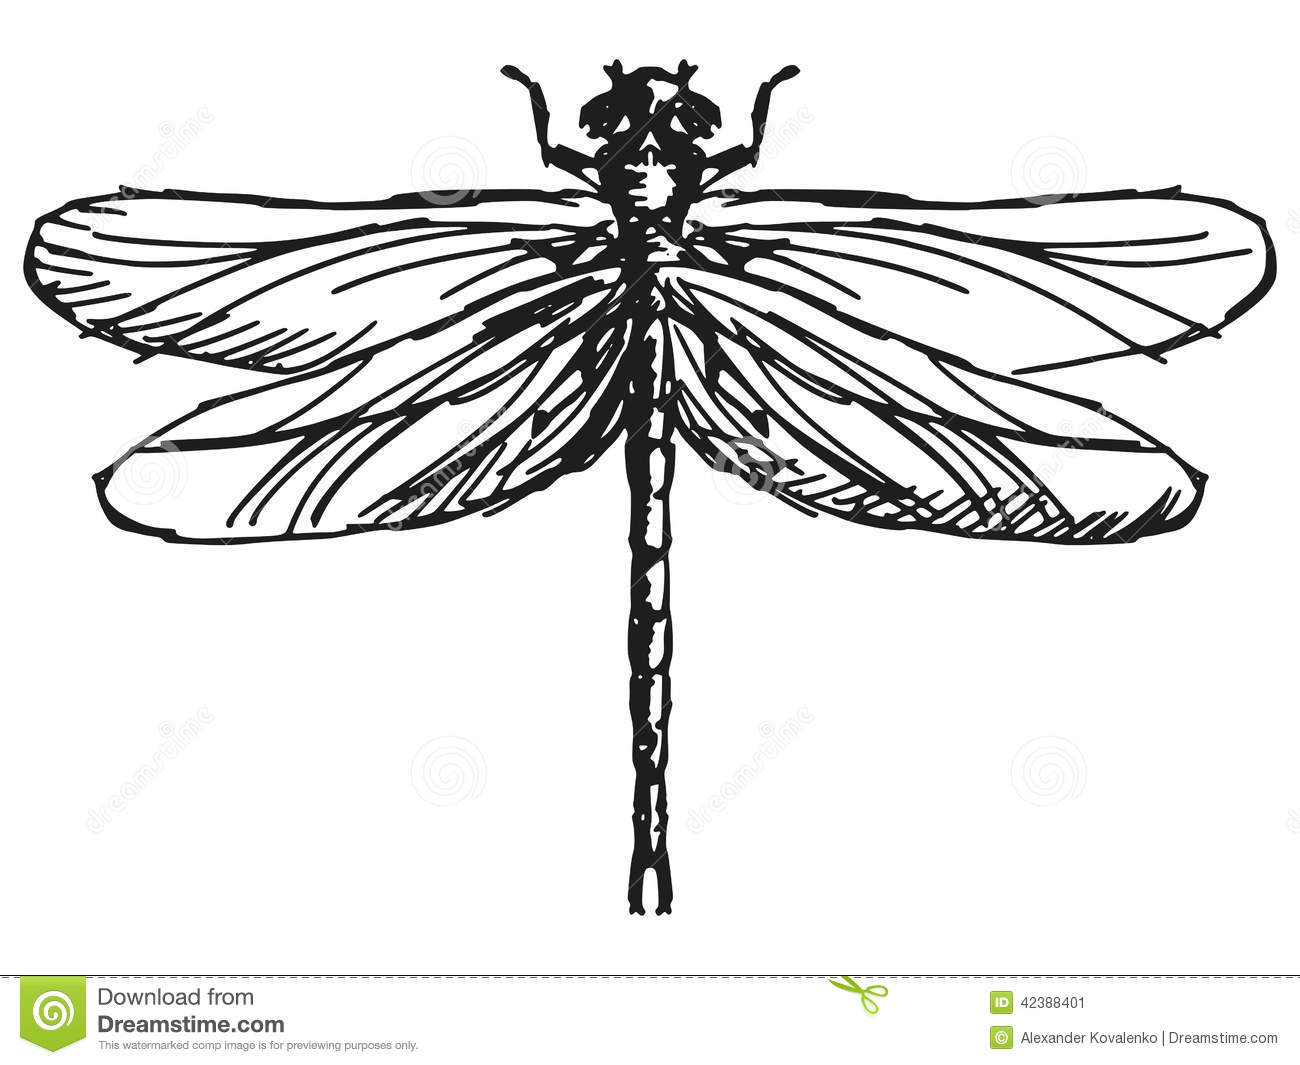 Dragonfly Images Stock Photos amp Vectors  Shutterstock